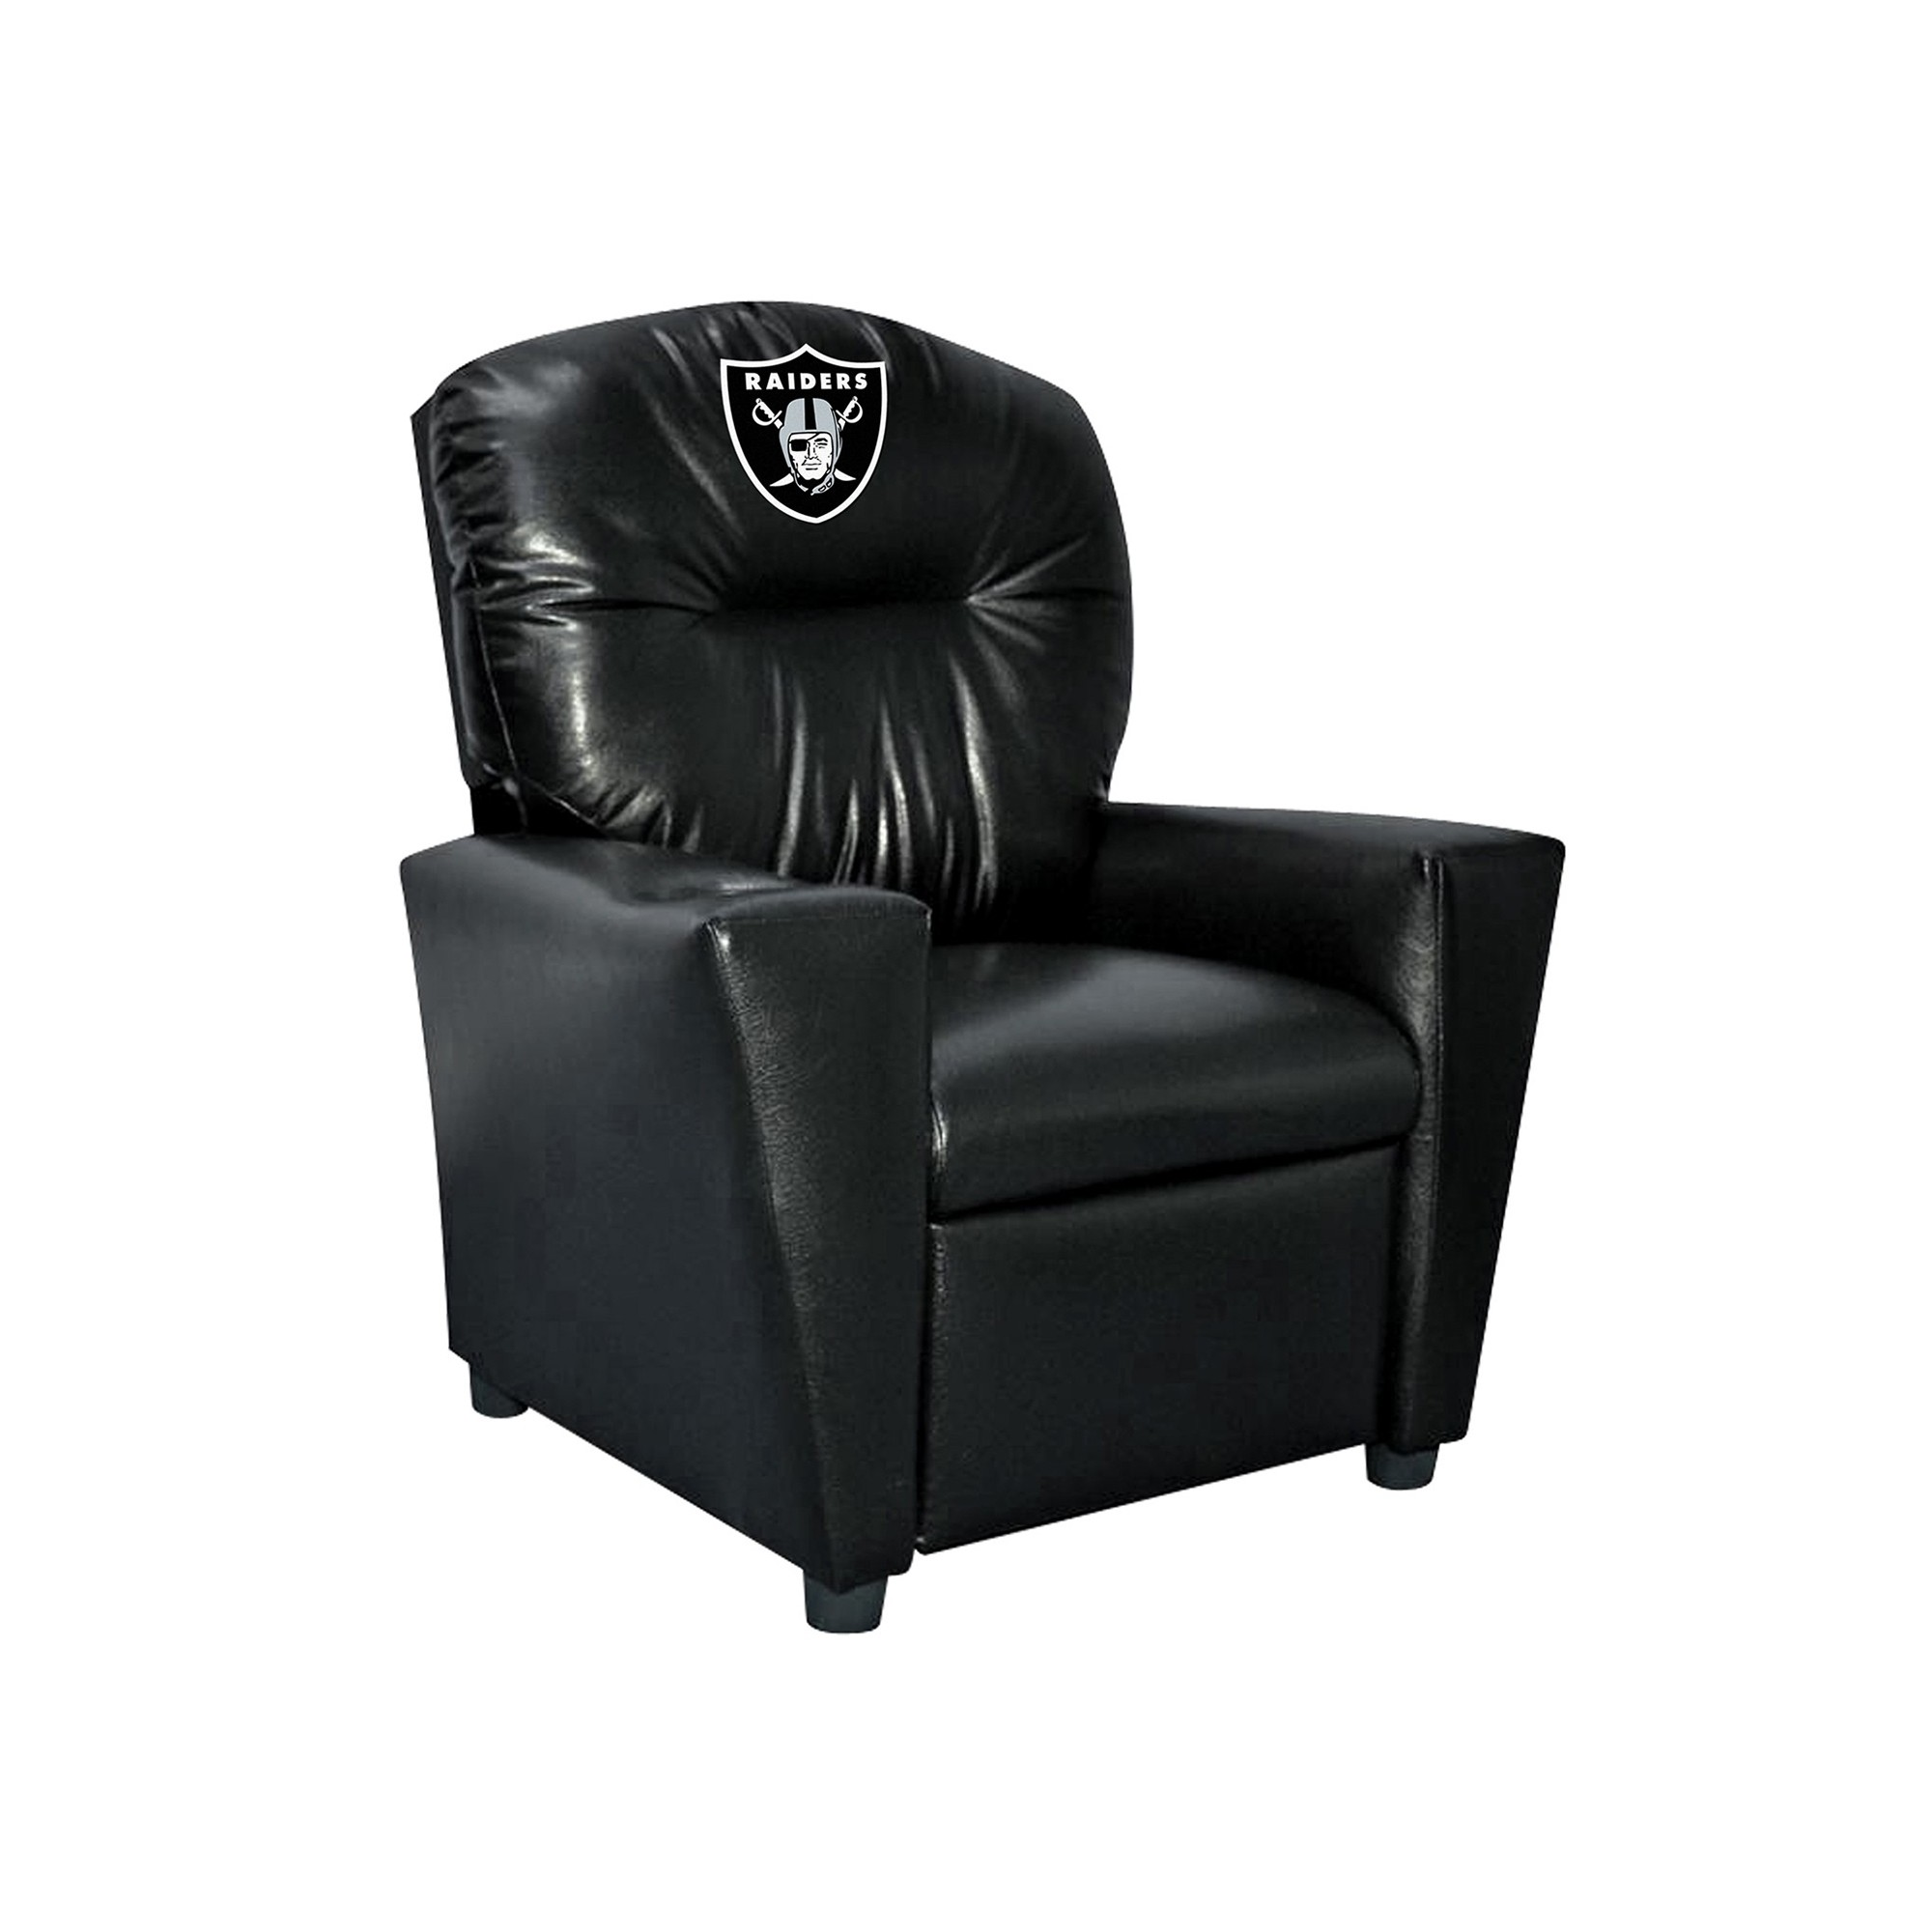 Oakland Raiders Kids Faux Leather Recliner - 107-1010 - Football Nfl Football Oakland Raiders Kids Dish Sets 107-1010